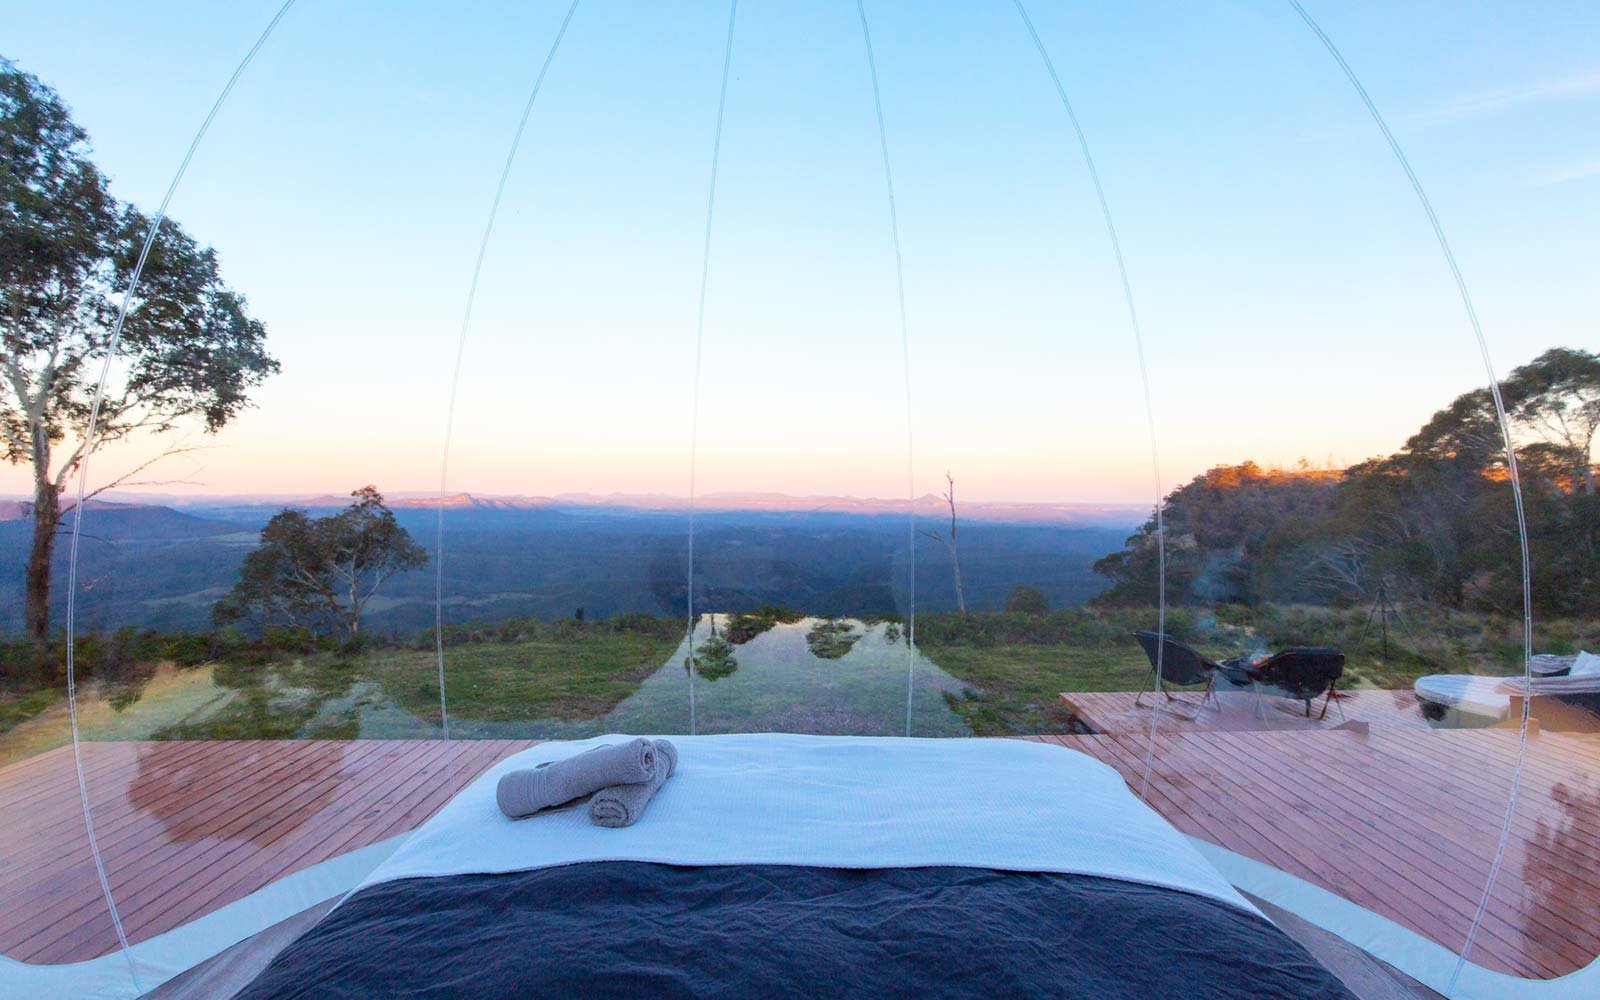 Sleep Under The Stars In A Bubble Tent In Australia